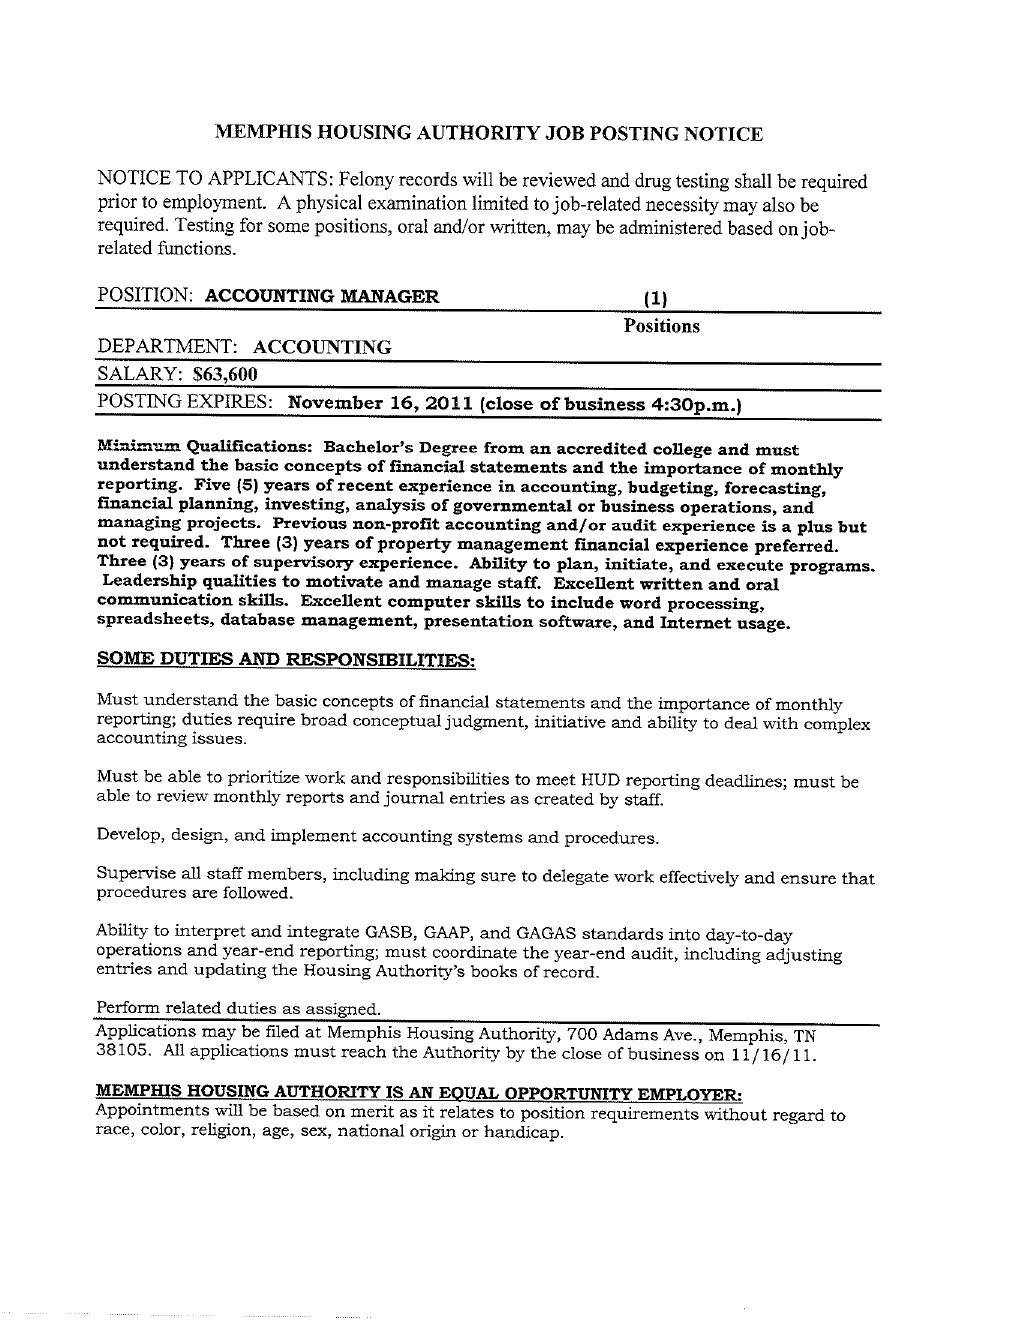 dietitian - Clinical Dietician Cover Letter